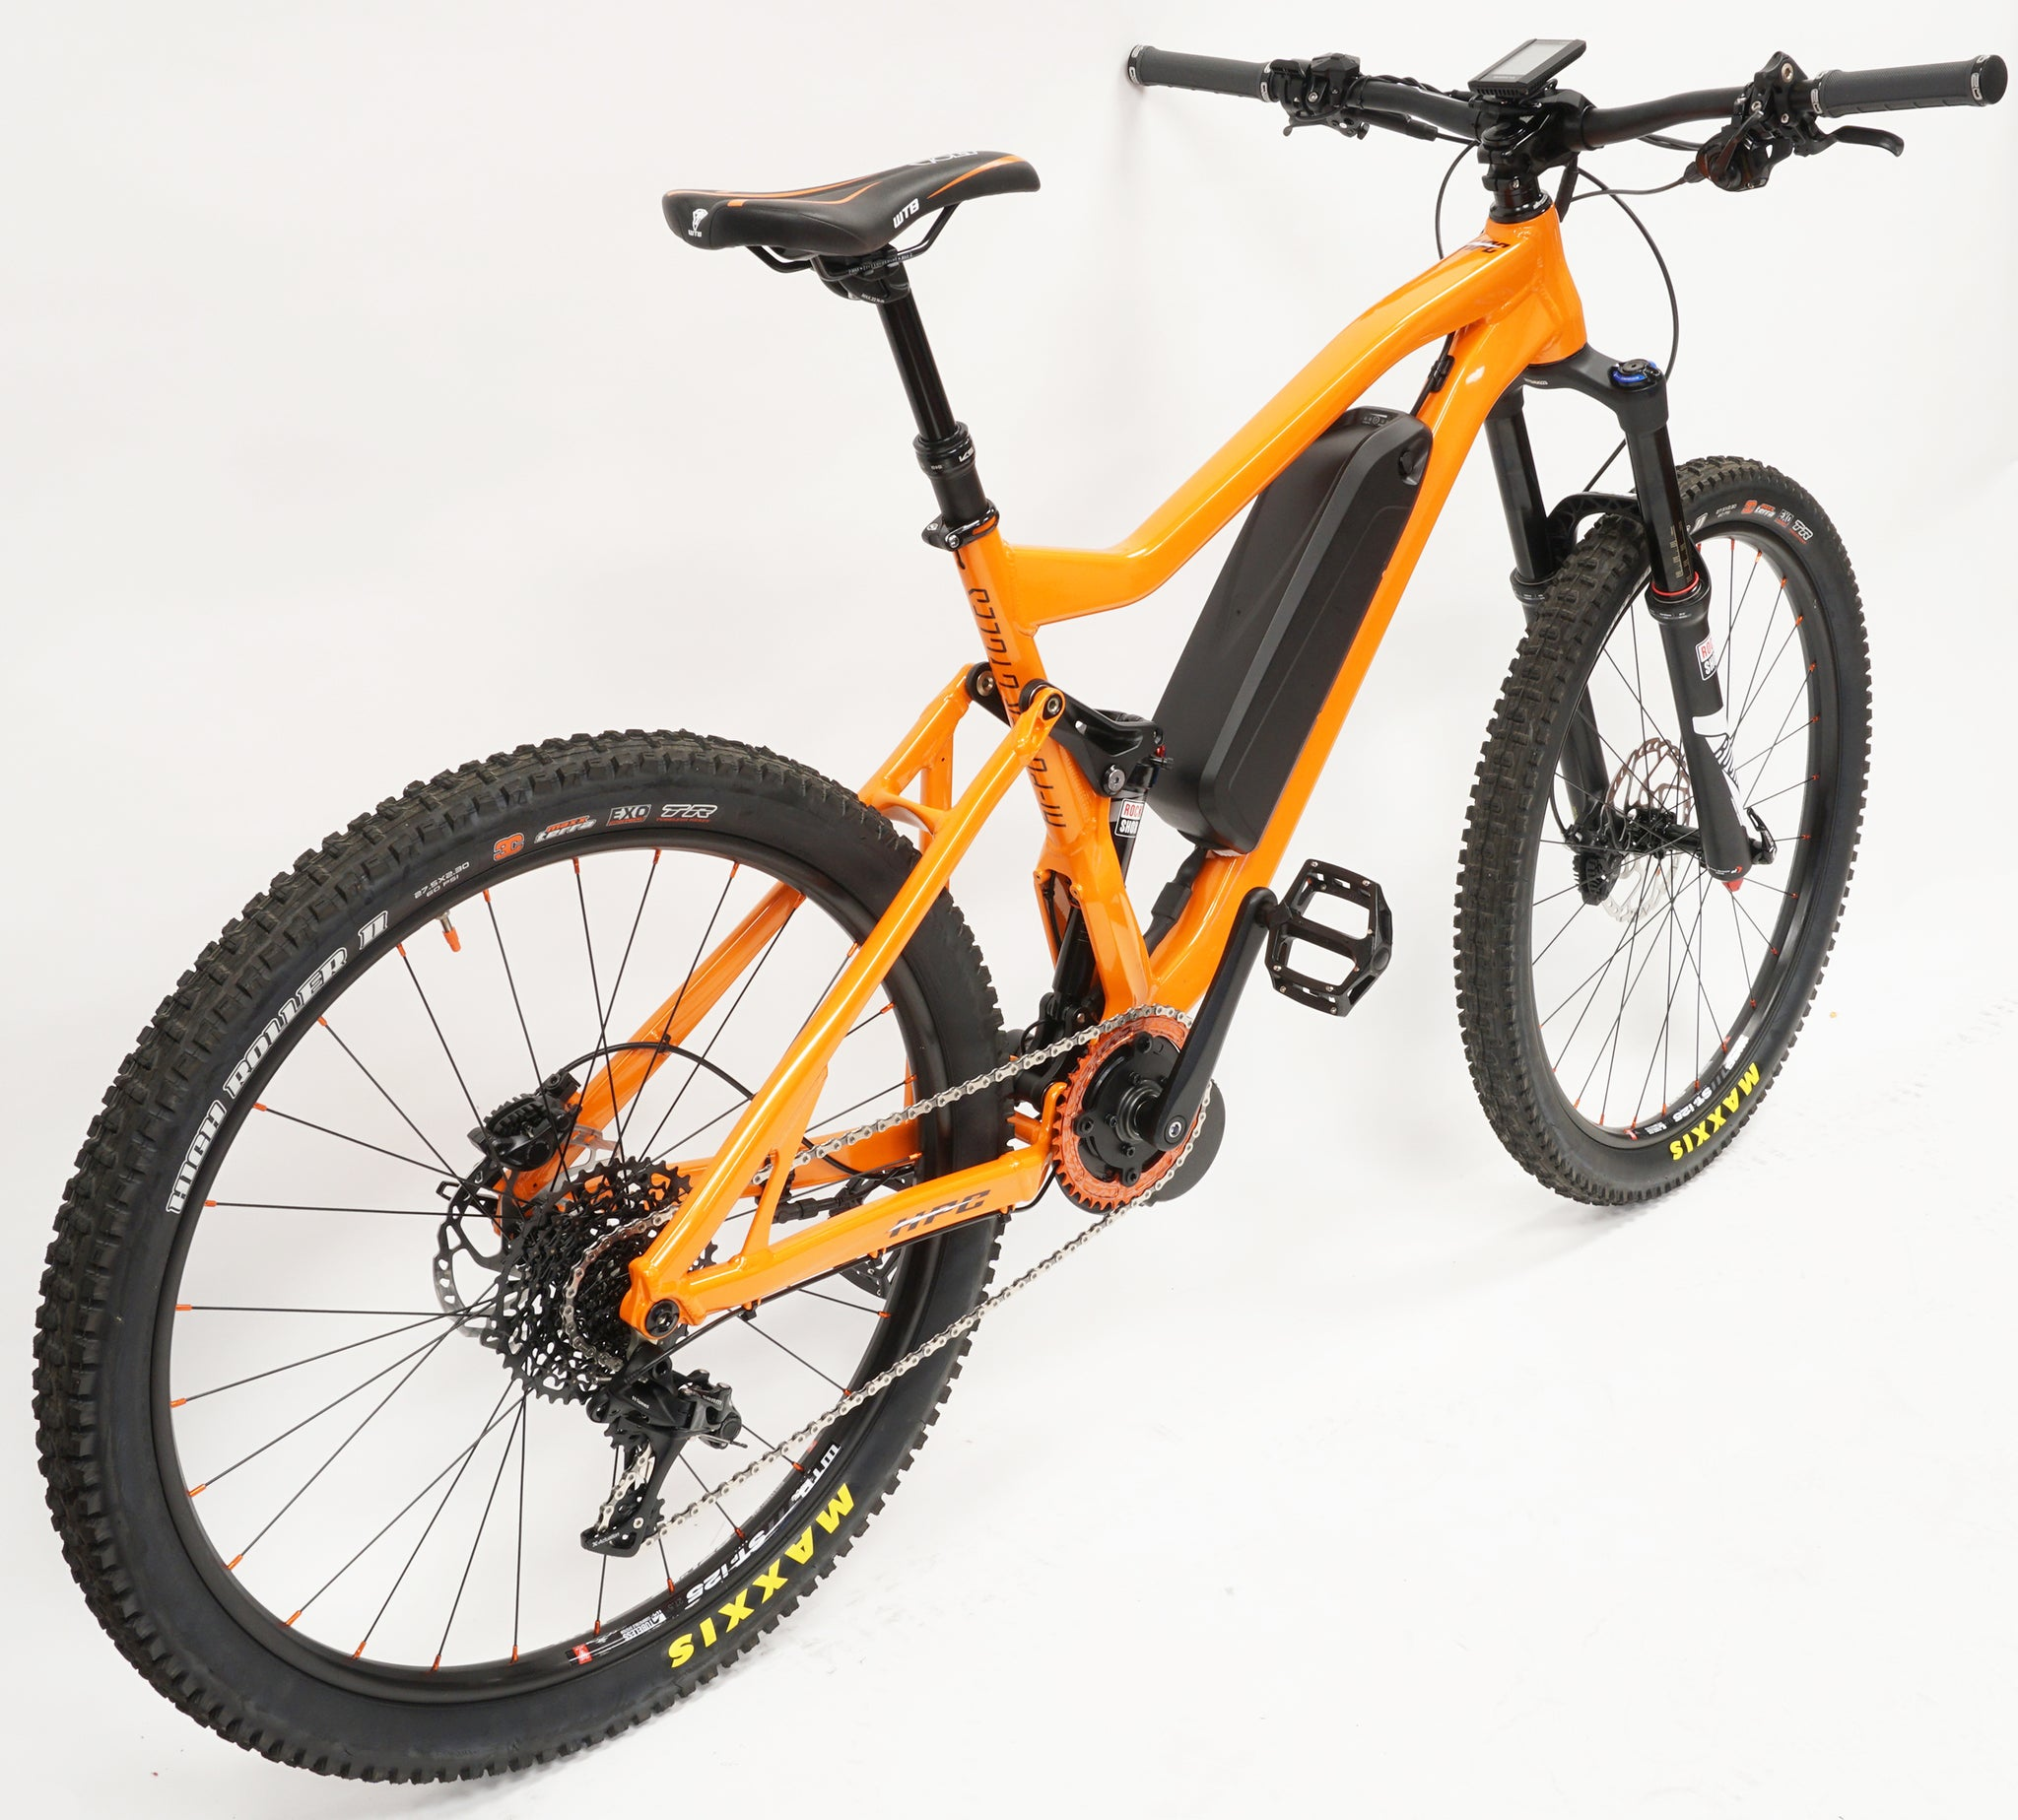 HPC Enduro Electric Bike